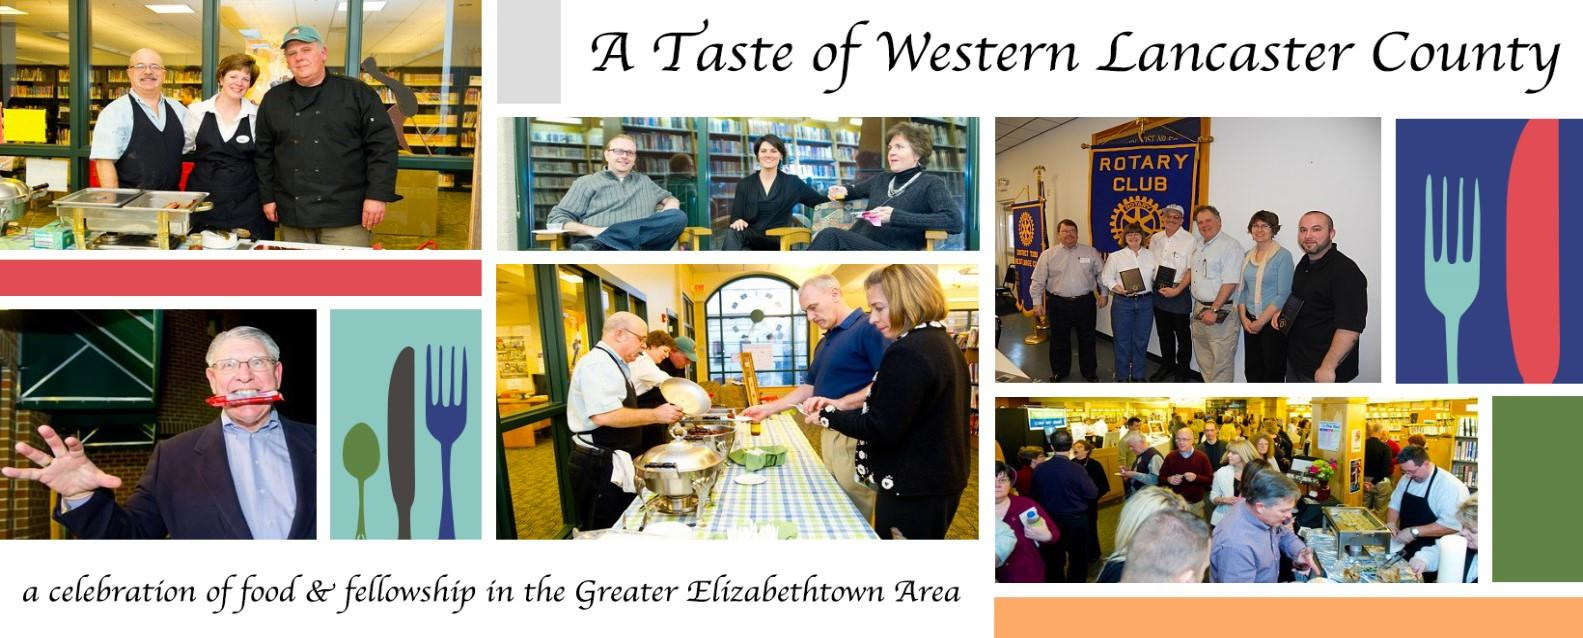 A Taste of Western Lancaster County - a celebration of food and fellowship in the Greater Elizabethtown Area